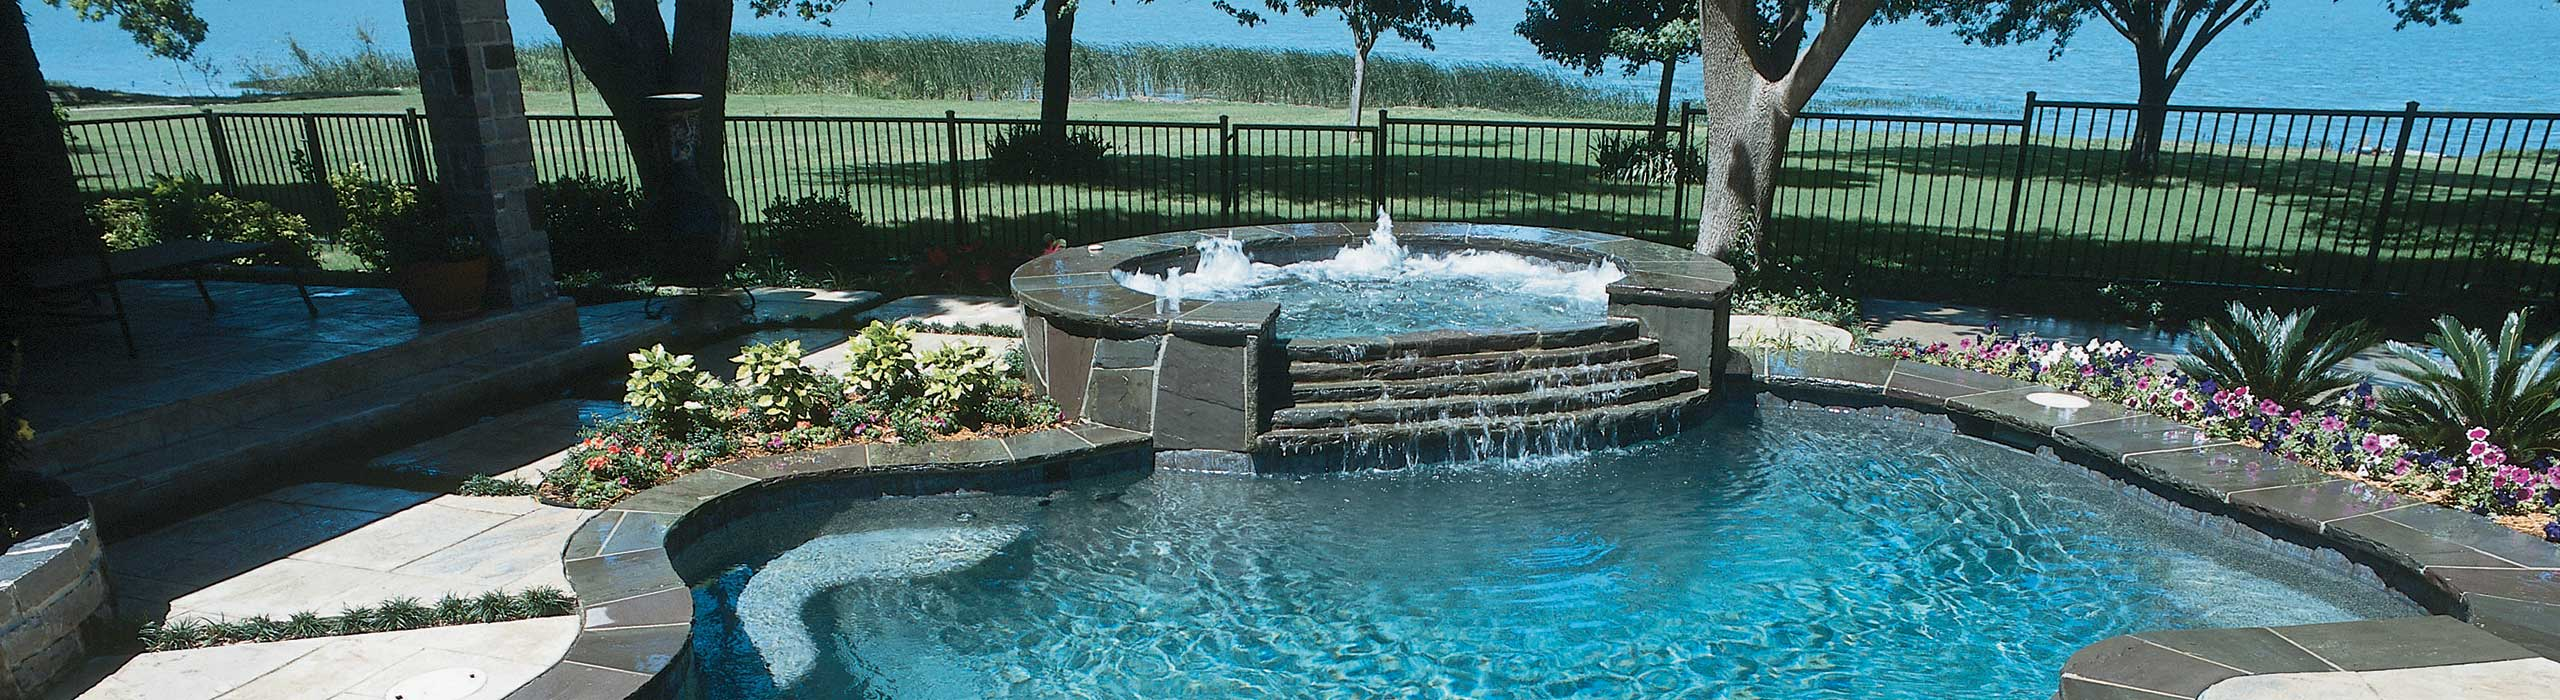 Pools Landscaping In New Jersey